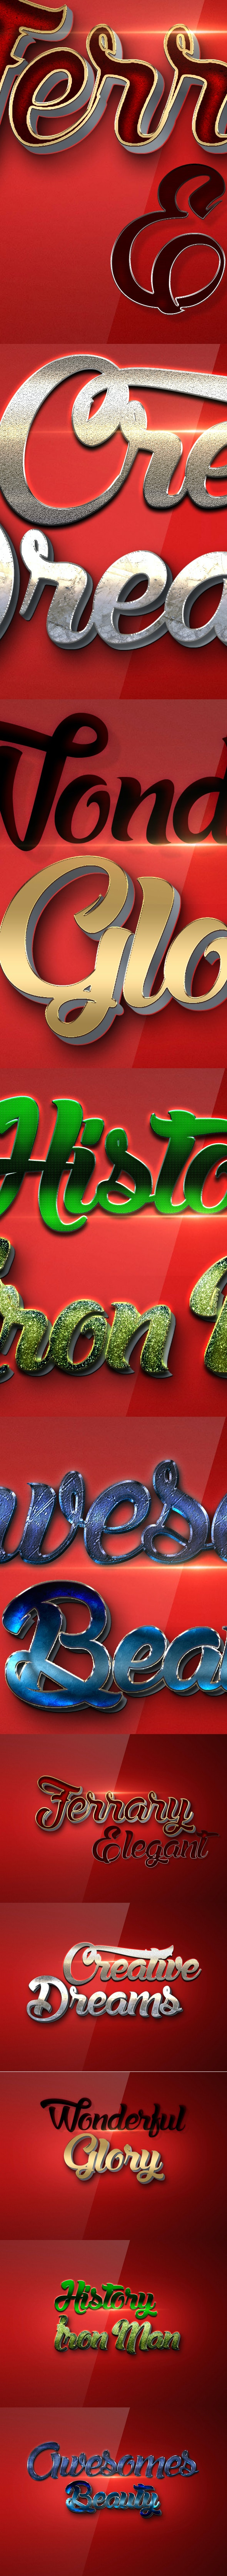 10 3D Text Styles R18 - Text Effects Styles